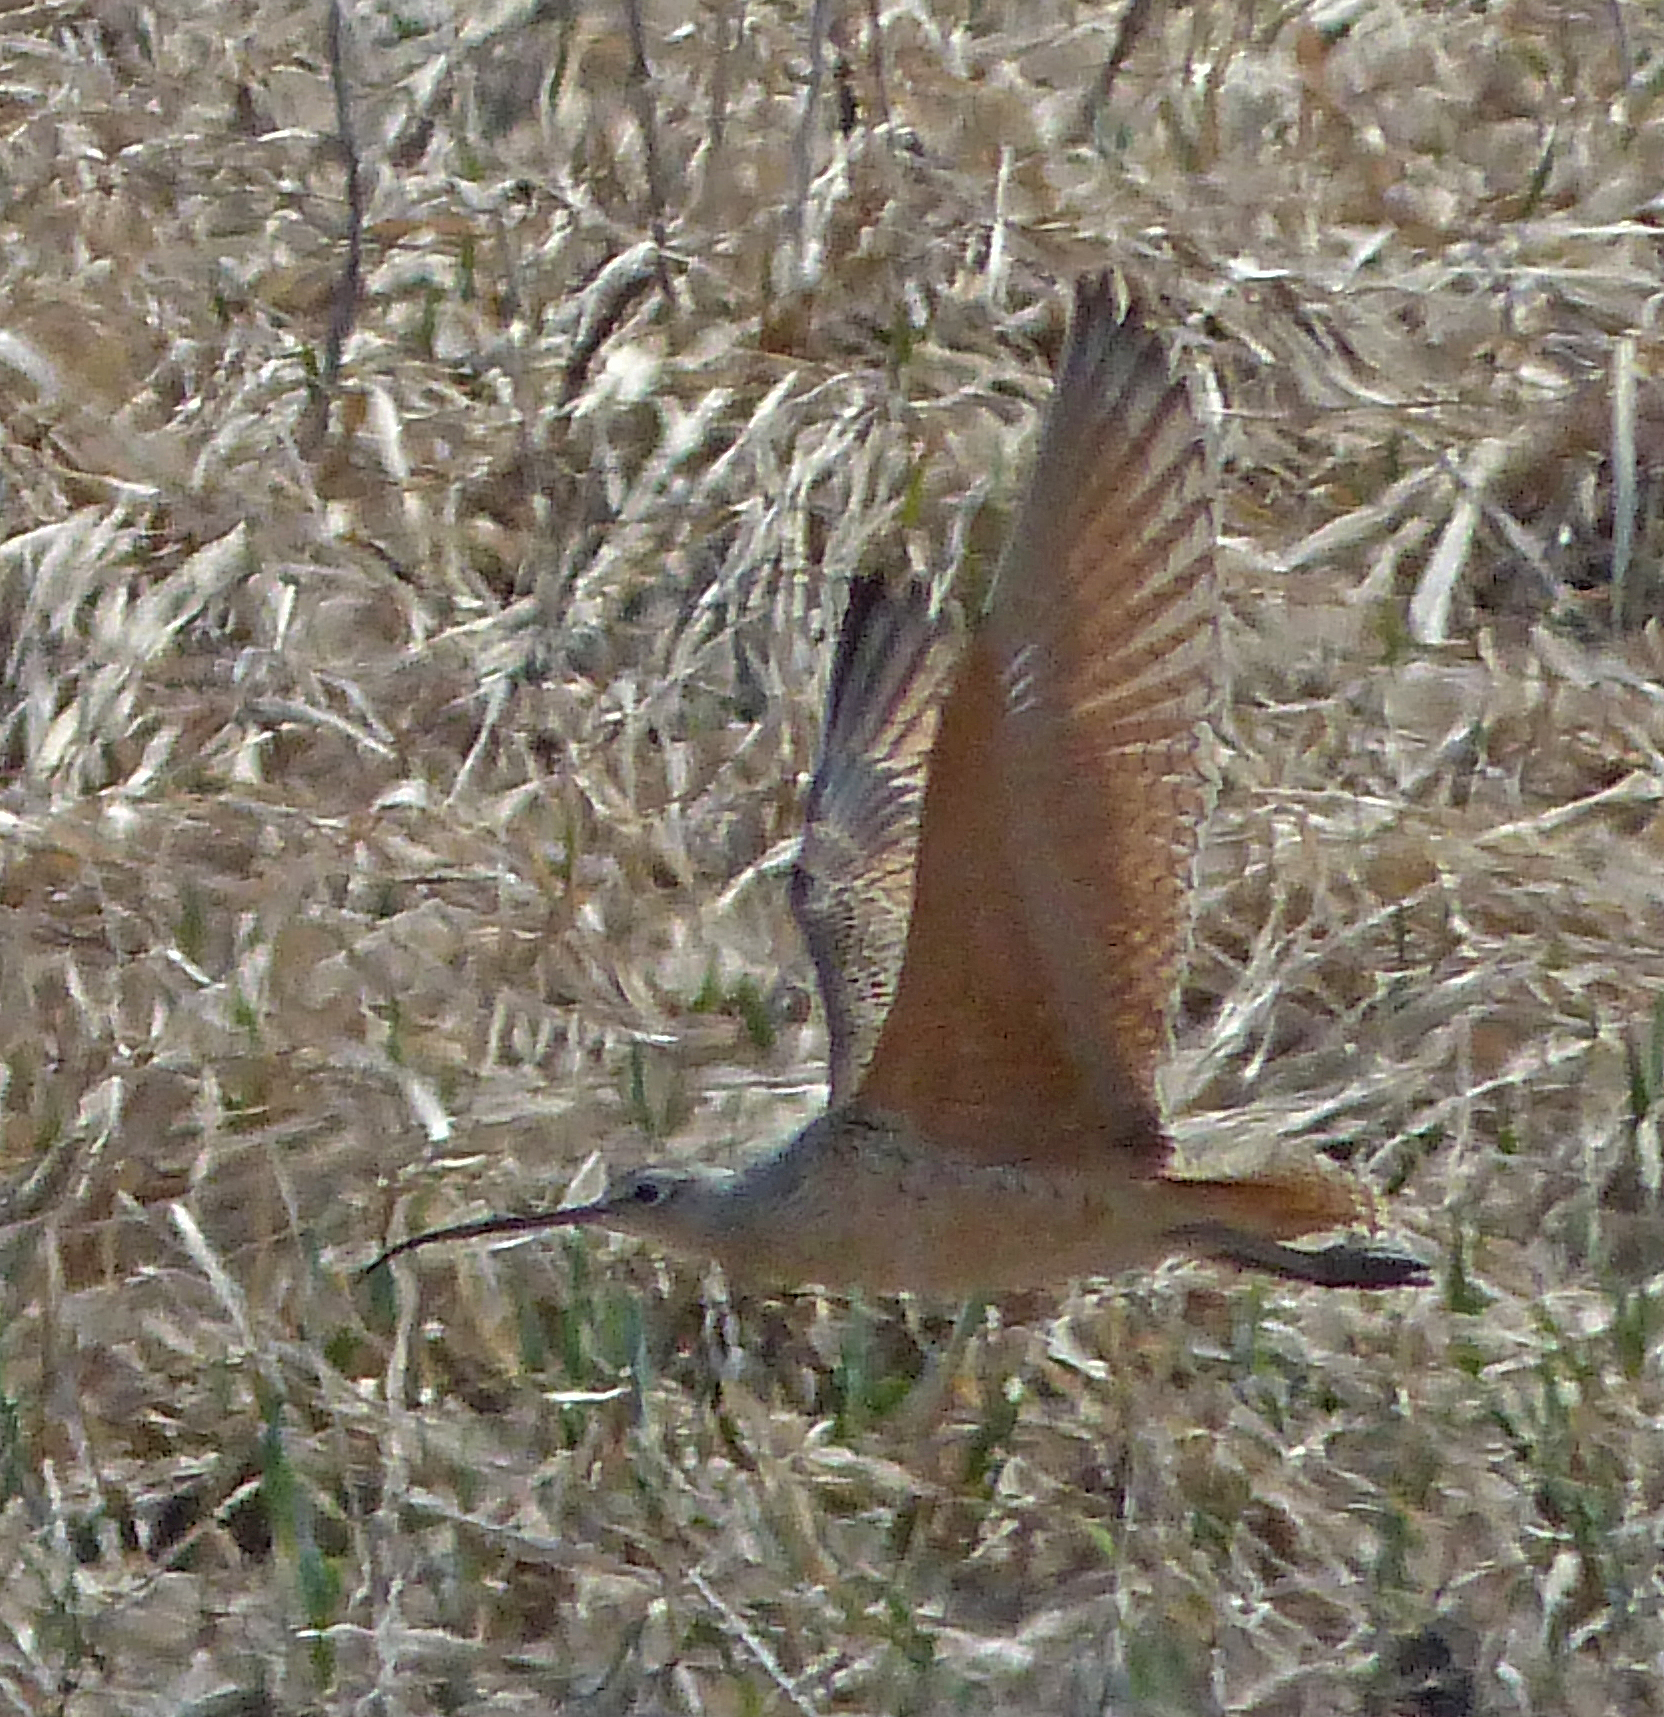 Bob Armstrong captured the Long-bill Curlew in flight. Steve Heinl says the bird is most distinctive this way because its underwings are cinnamon colored. (Photo by Bob Armstrong)